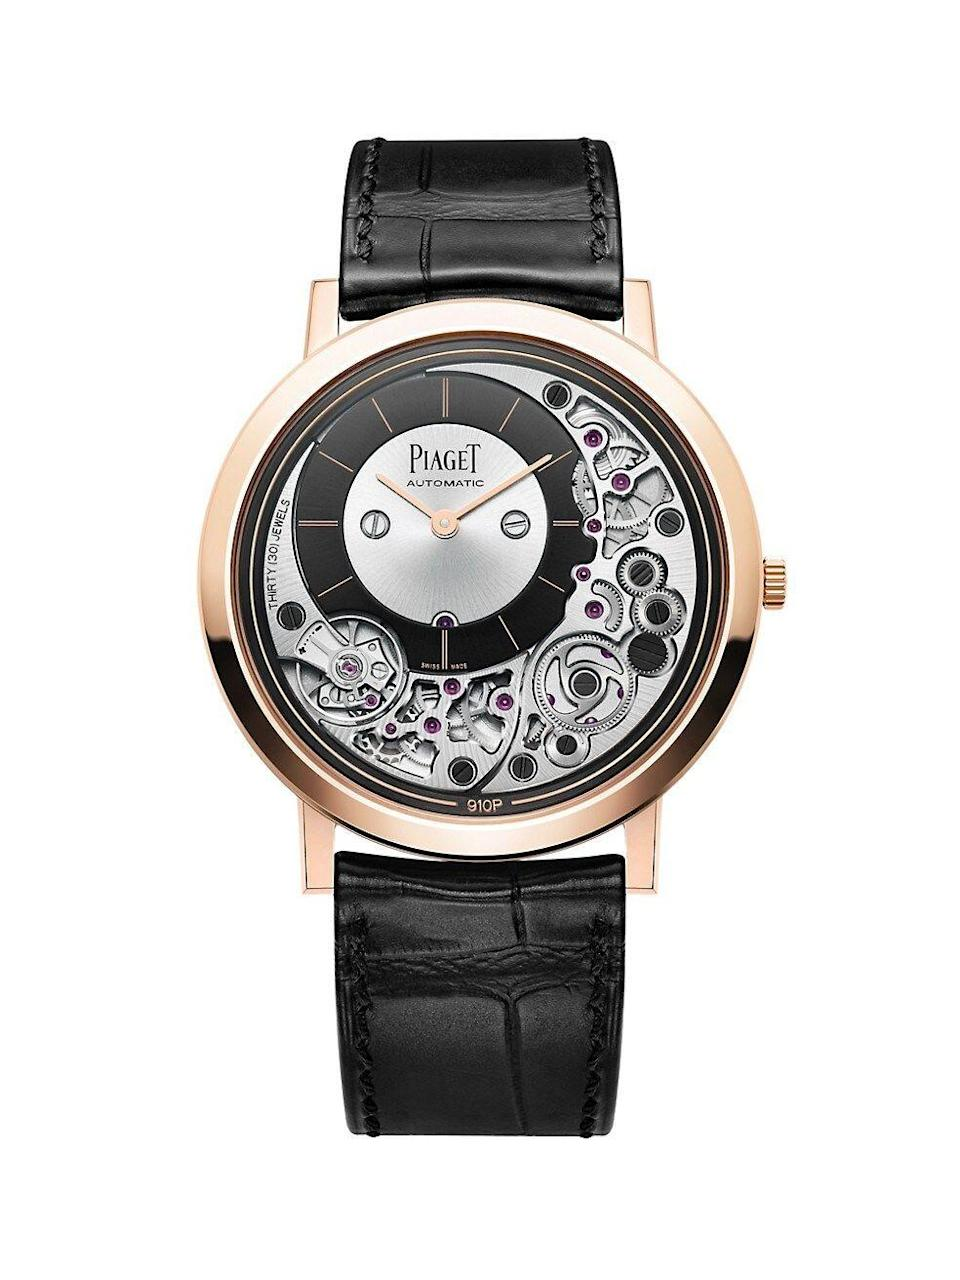 """<p><strong>Piaget</strong></p><p>saksfifthavenue.com</p><p><strong>$29800.00</strong></p><p><a href=""""https://go.redirectingat.com?id=74968X1596630&url=https%3A%2F%2Fwww.saksfifthavenue.com%2Fproduct%2Fpiaget-altiplano-18k-rose-gold-alligator-strap-watch-0400099178872.html&sref=https%3A%2F%2Fwww.townandcountrymag.com%2Fstyle%2Fjewelry-and-watches%2Fg14418271%2Fbest-mens-luxury-watches%2F"""" rel=""""nofollow noopener"""" target=""""_blank"""" data-ylk=""""slk:Shop Now"""" class=""""link rapid-noclick-resp"""">Shop Now</a></p><p>Billed as one of the world's thinnest automatic watch, this slender hand-wound 18k rose gold watch measures just 4.30mm thick.</p><p>Case size: 41mm</p>"""